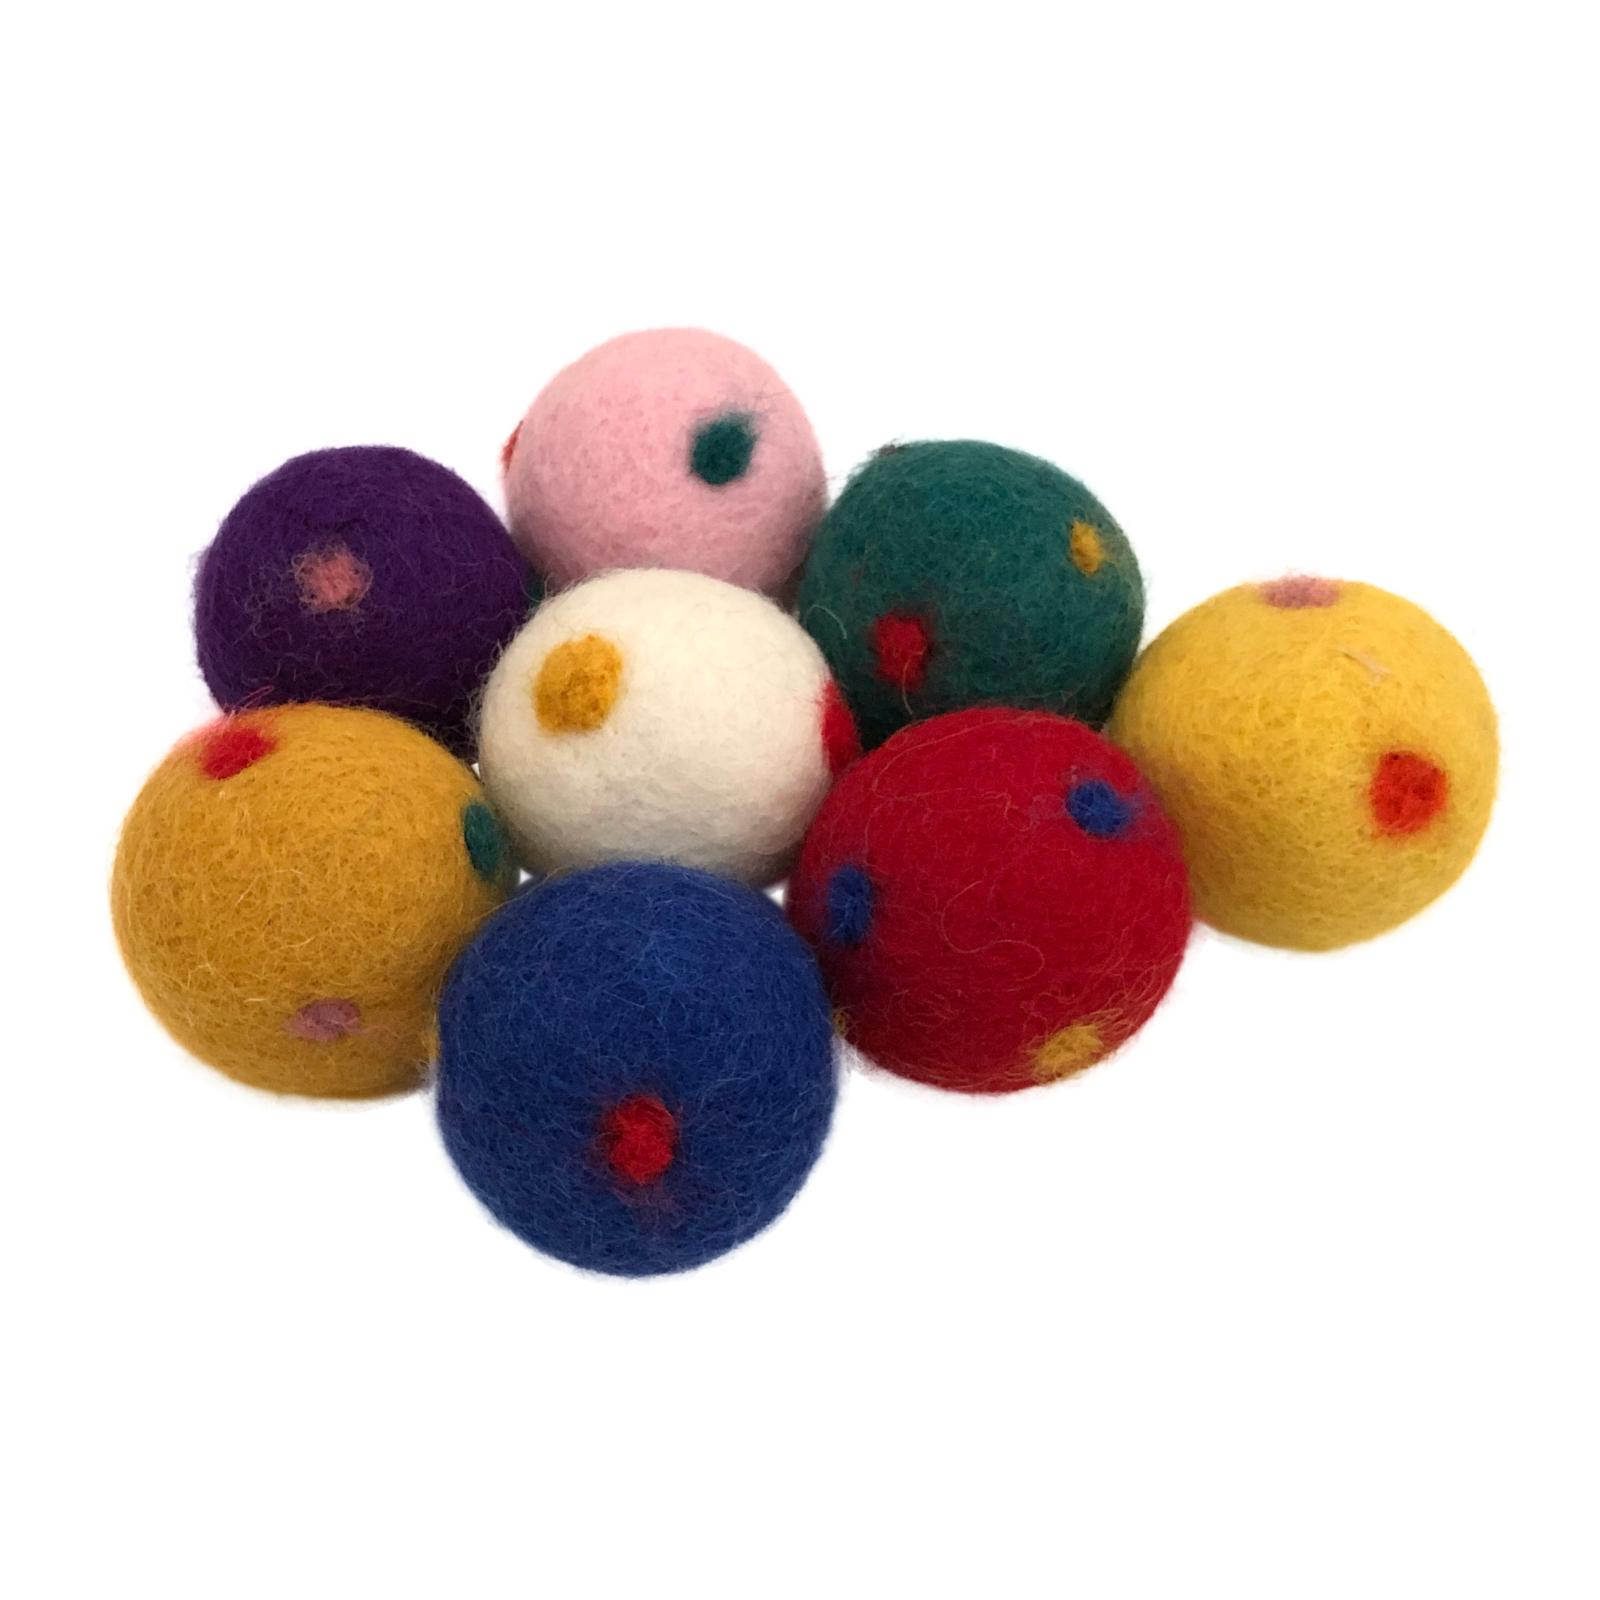 wool ball cat toys eco friendly safe